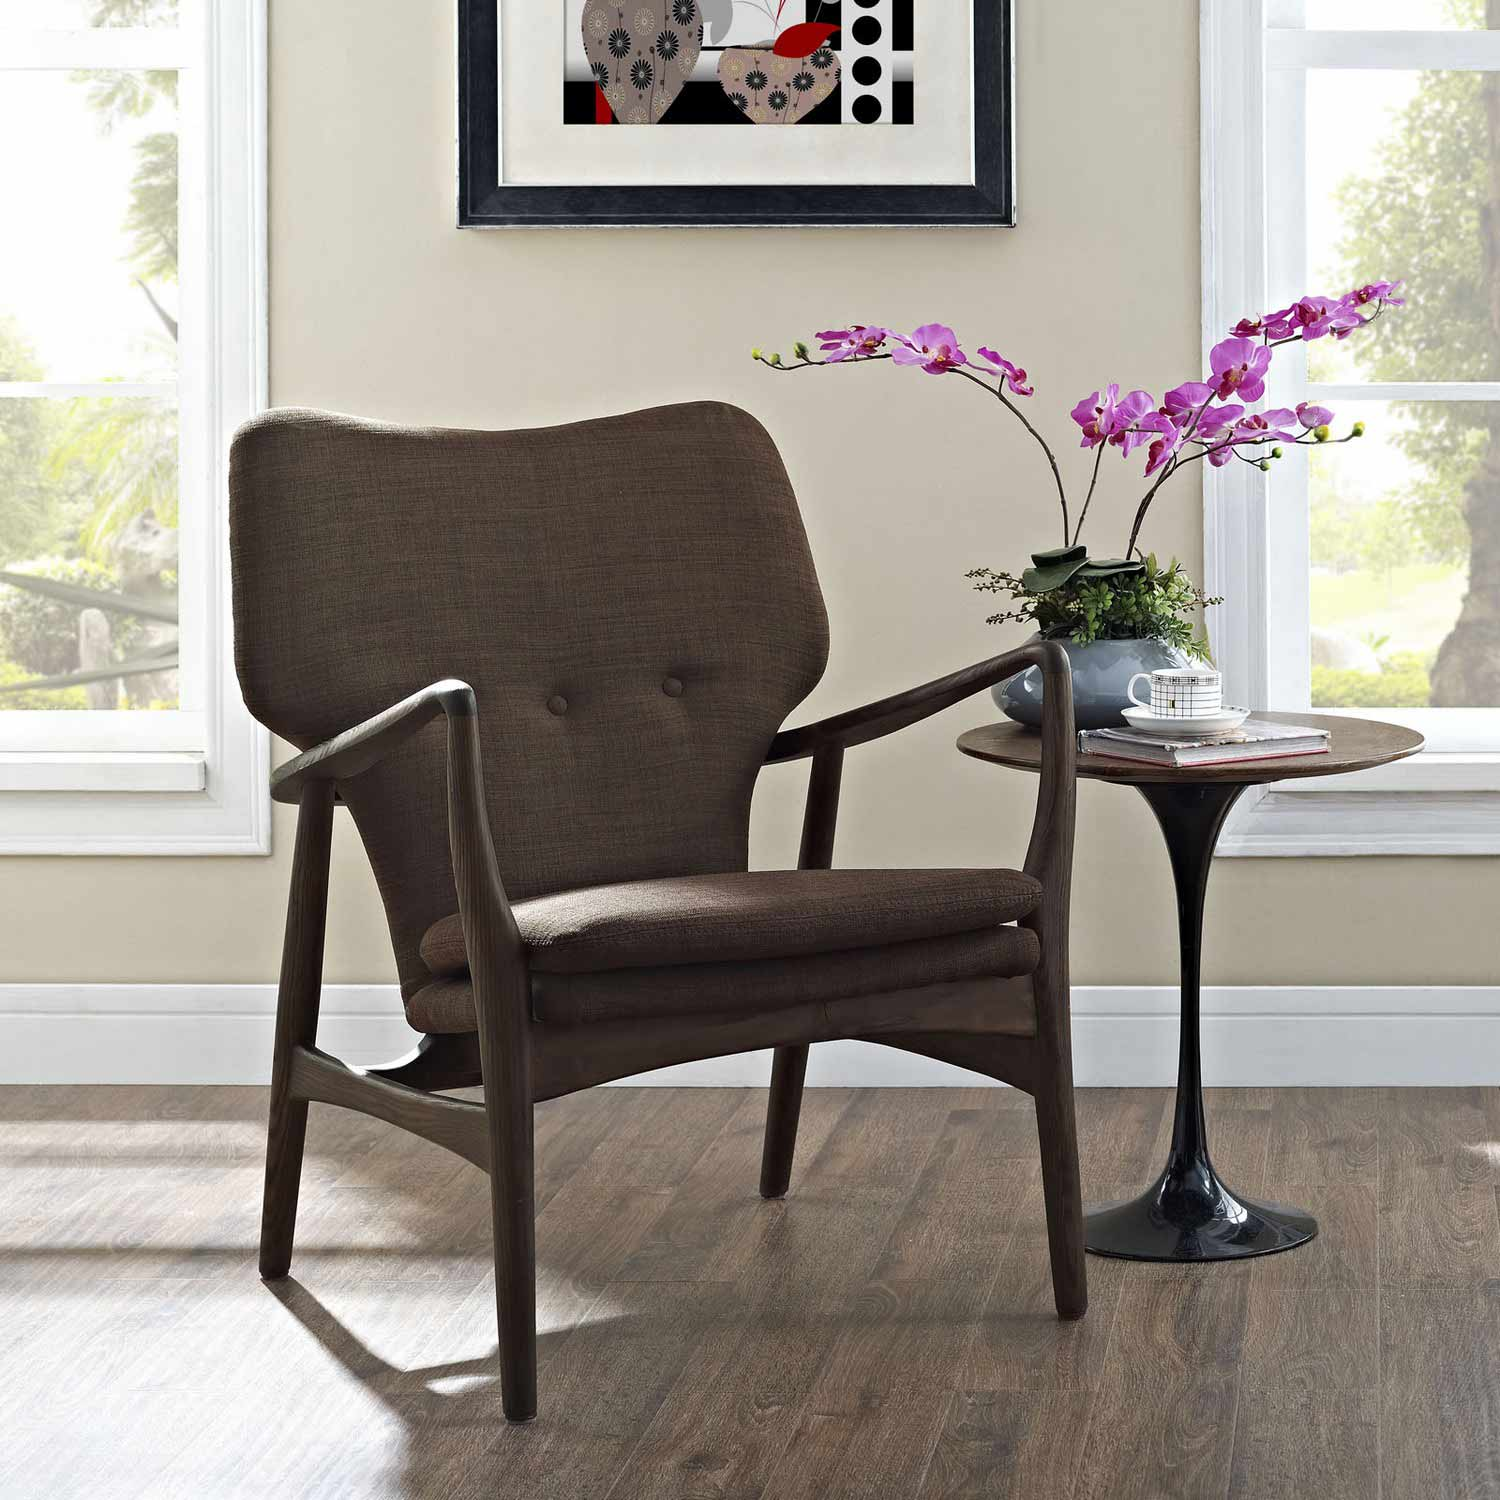 Modway Heed Lounge Chair - Walnut Brown